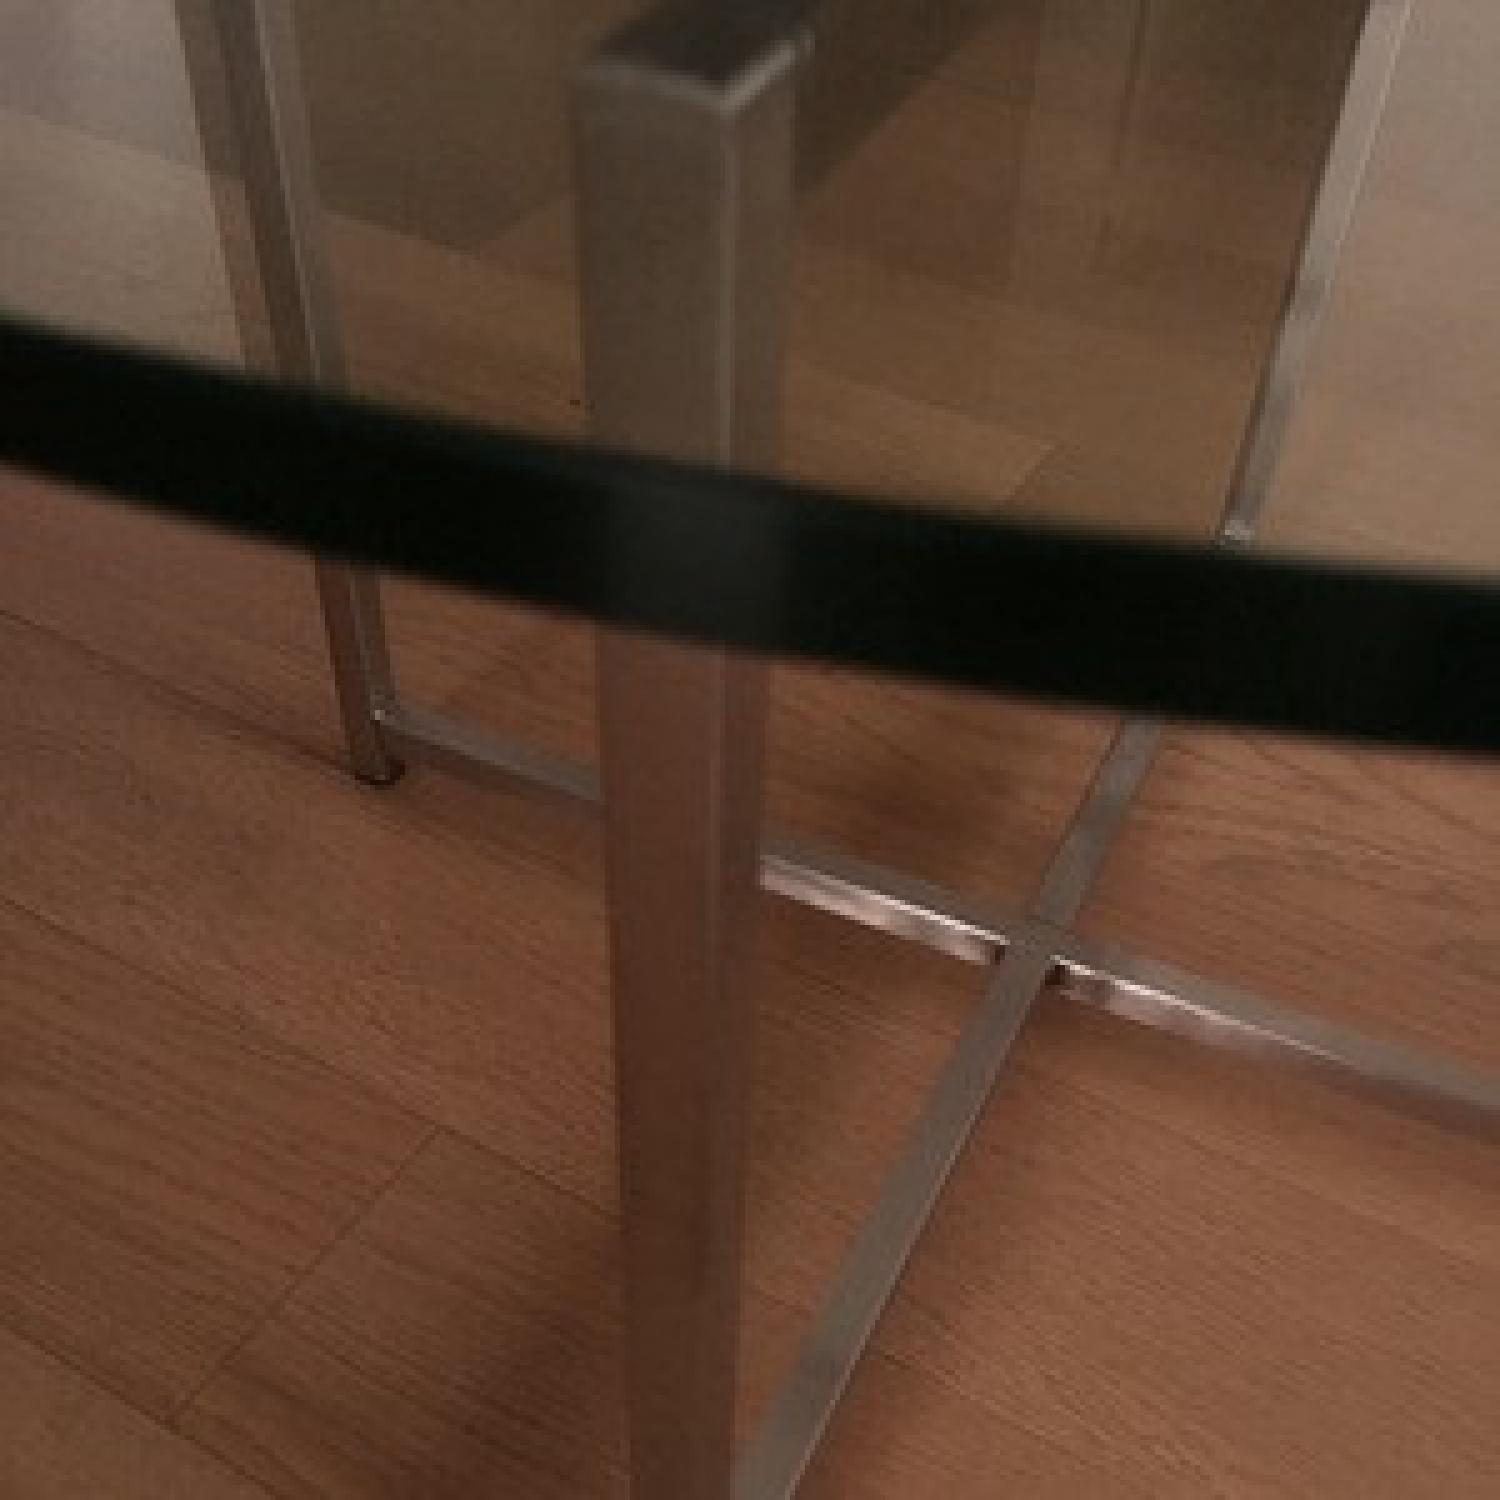 Room & Board Cocktail Table-Stainless Steel Legs - image-2